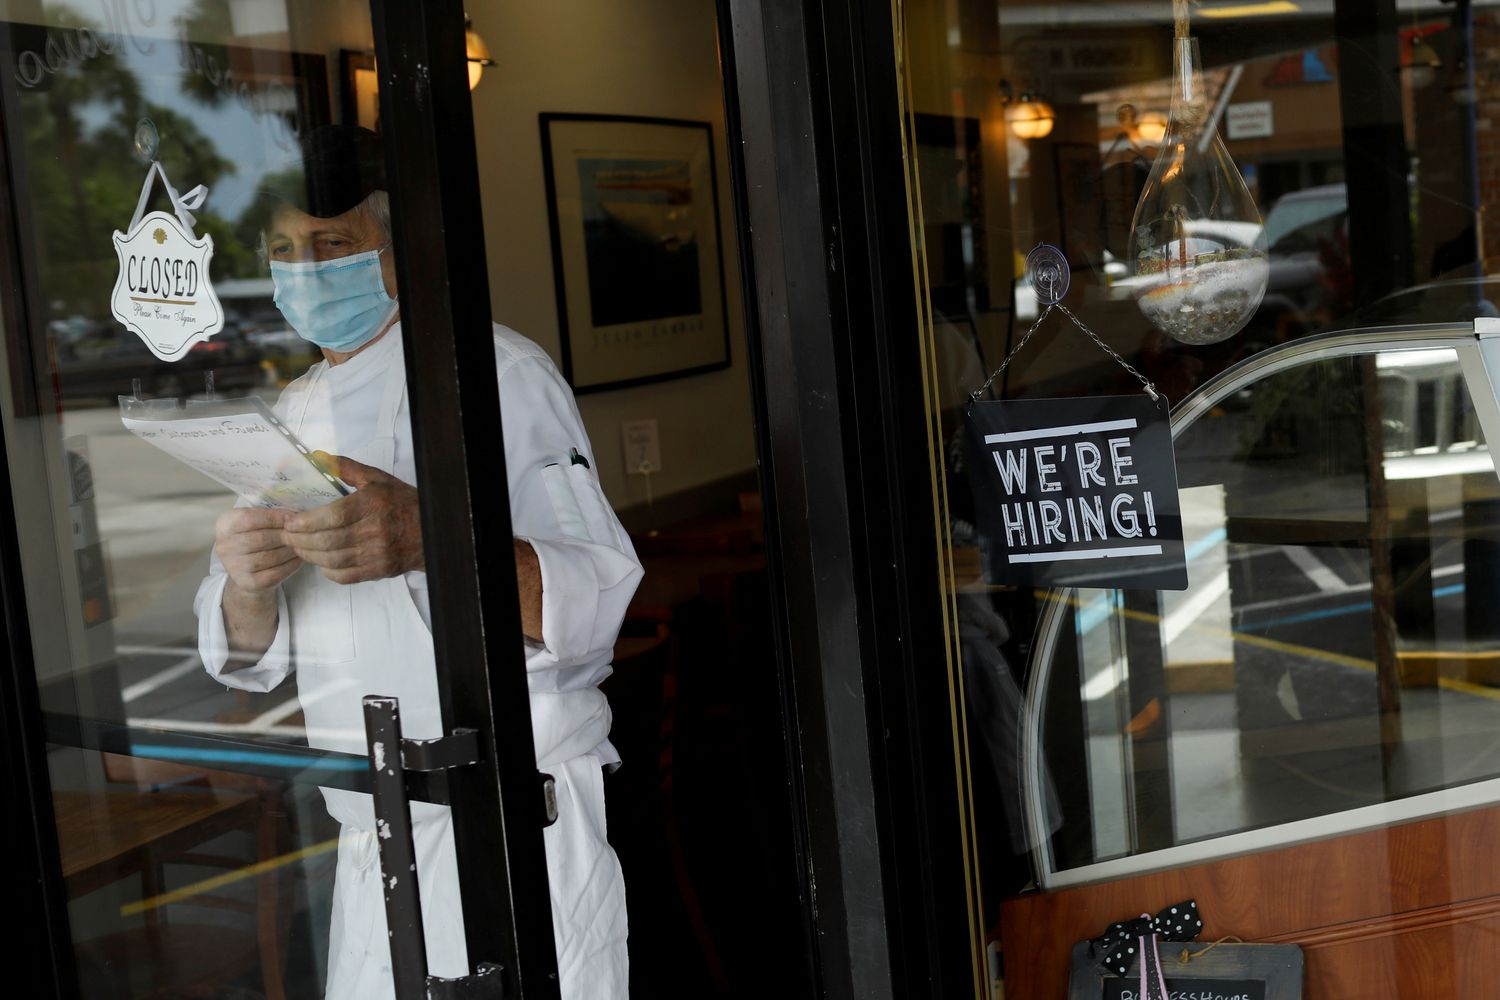 A 'We're Hiring' sign advertising jobs is seen at the entrance of a restaurant, as Miami-Dade County eases some of the lockdown measures put in place during the coronavirus disease outbreak, in Miami, Florida, on May 18. (Reuters photo)